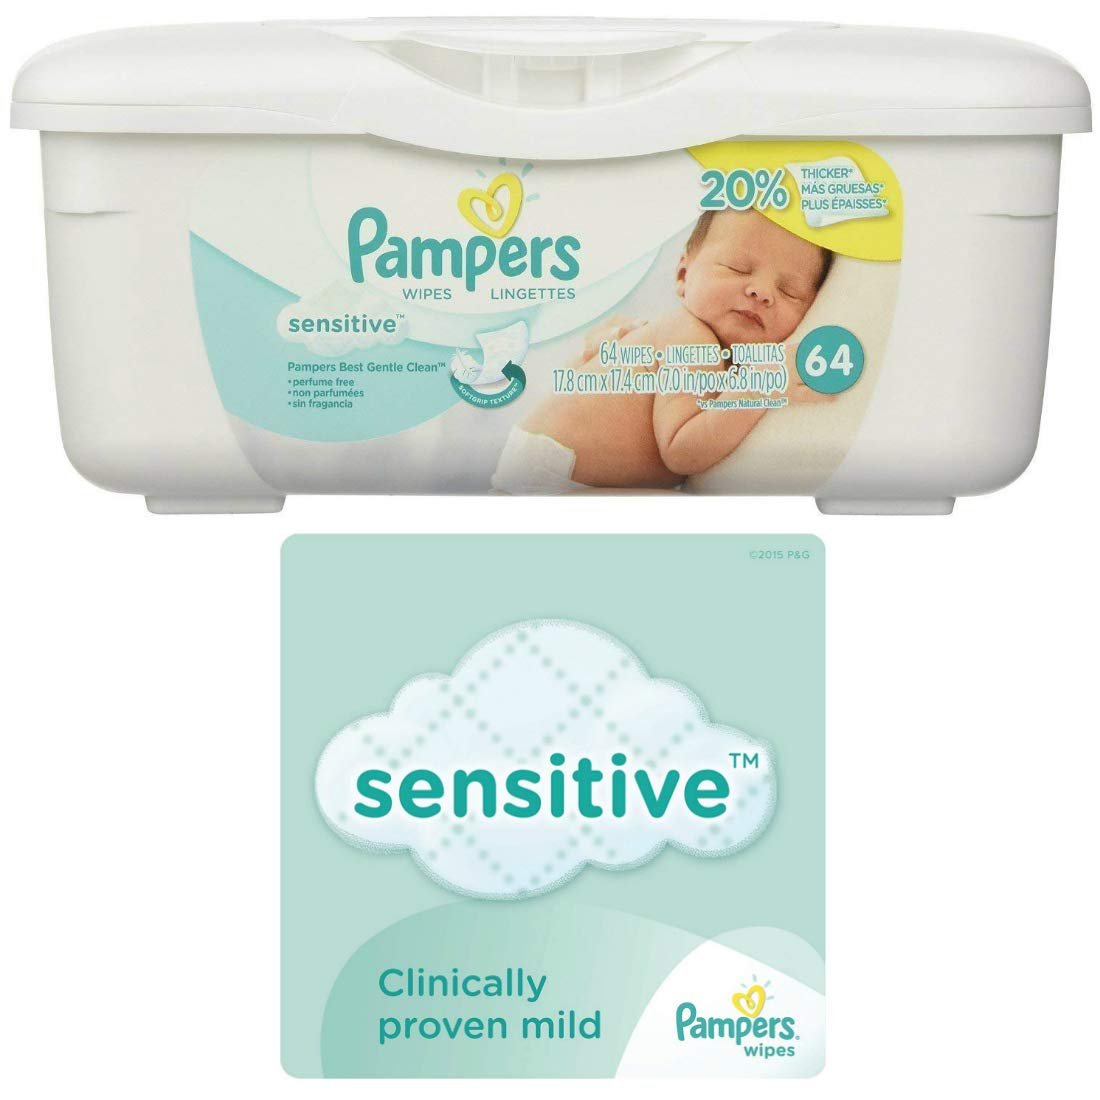 Amazon.com : Pampers Sensitive Wipes Tub (64 ct) Bundle with Huggies Natural Care Flip Top Wipes (32 ct) : Baby